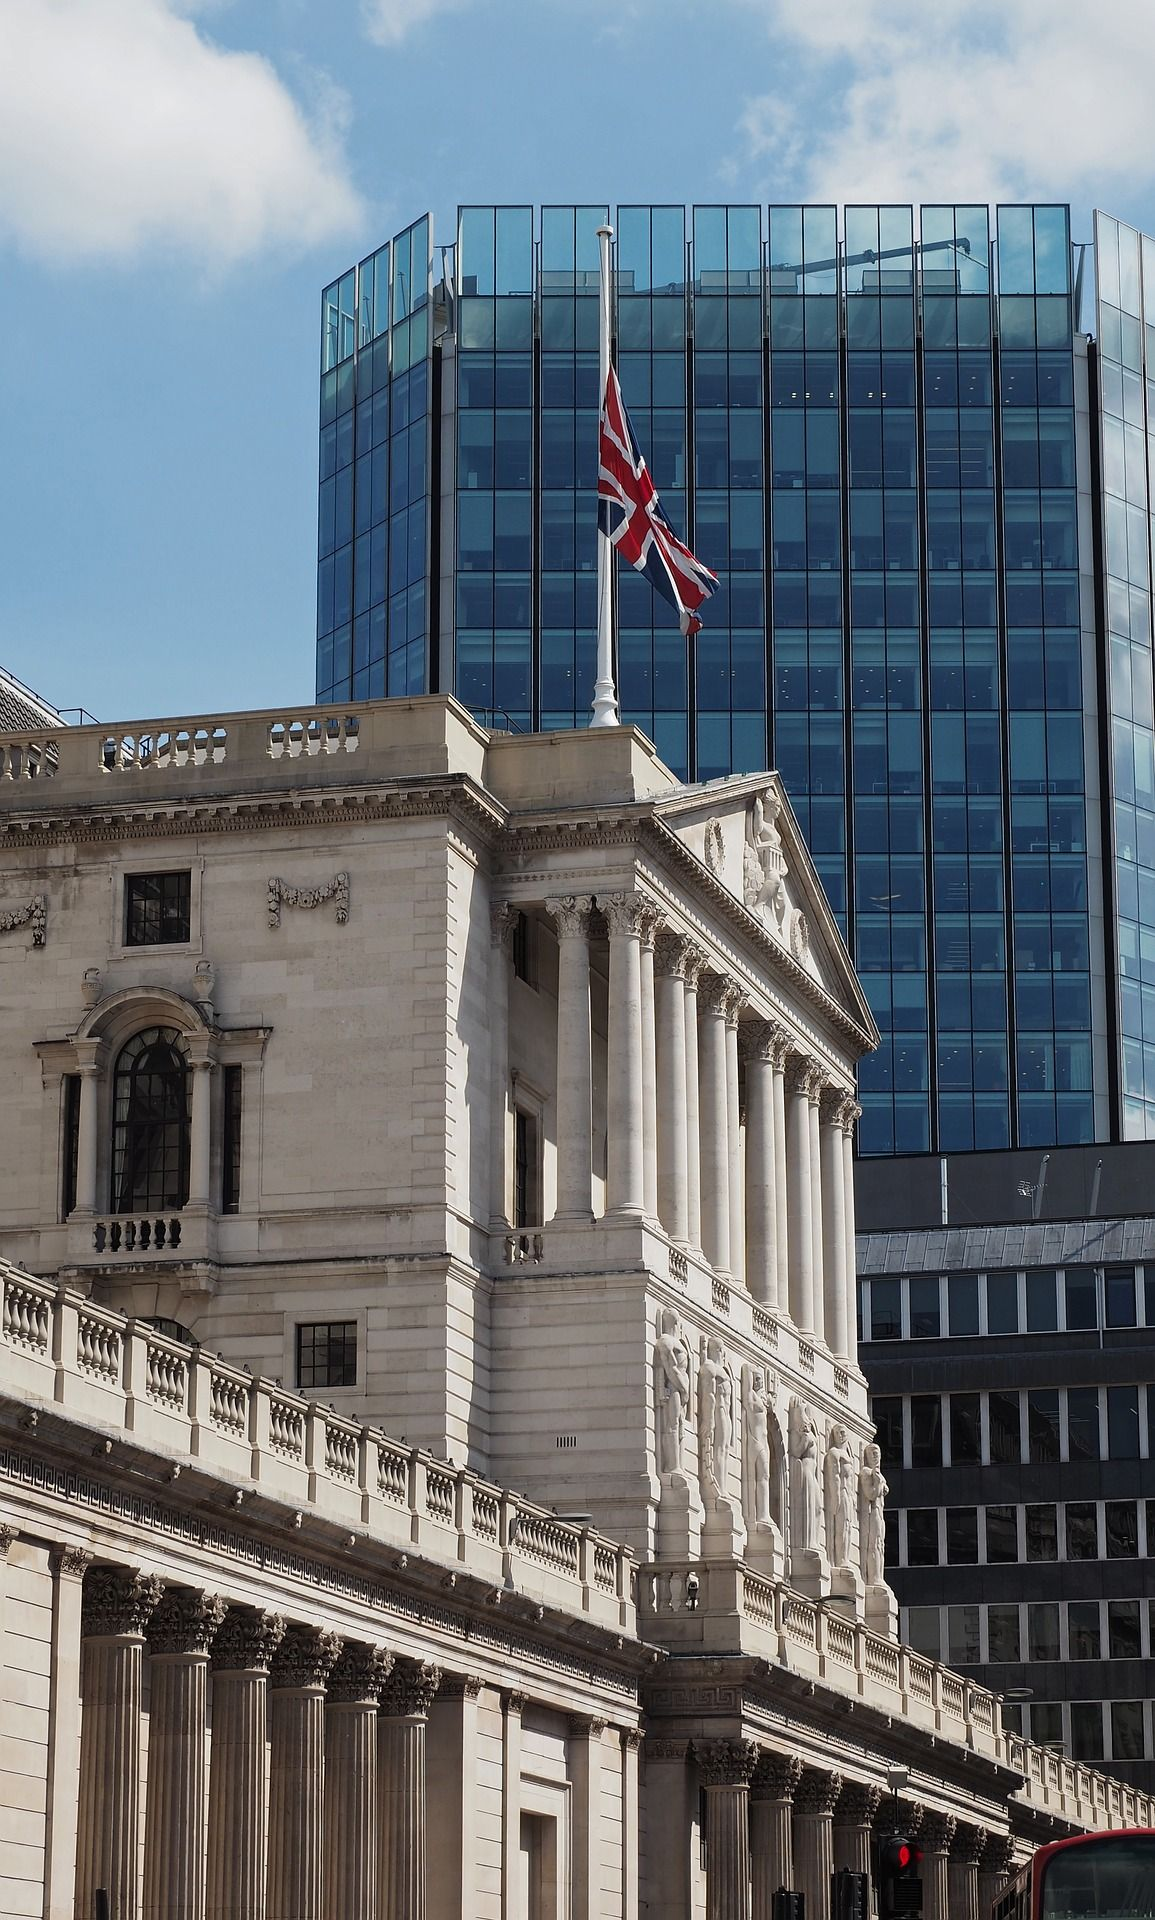 Boe remains on hold with a 63 vote count bank of